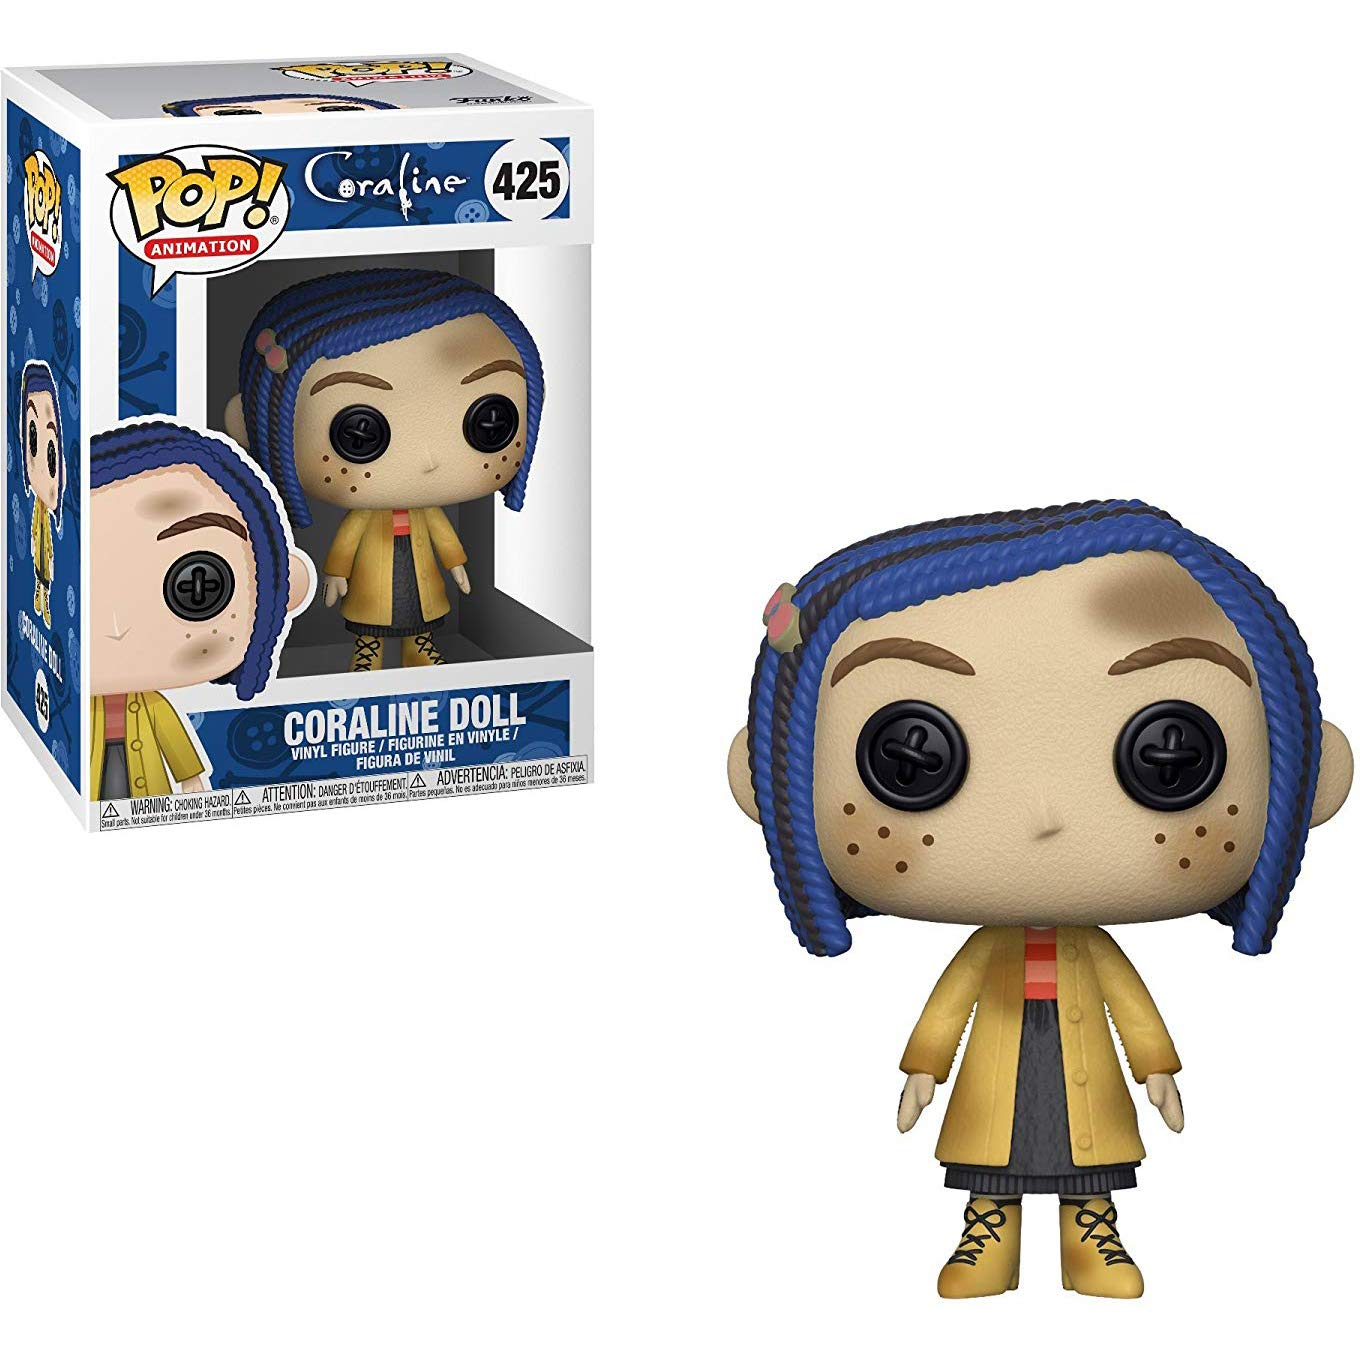 Funko Coraline Doll Animation Vinyl Figure /& 1 PET Plastic Graphical Protector Bundle #425 // 32980 - B Coraline x POP